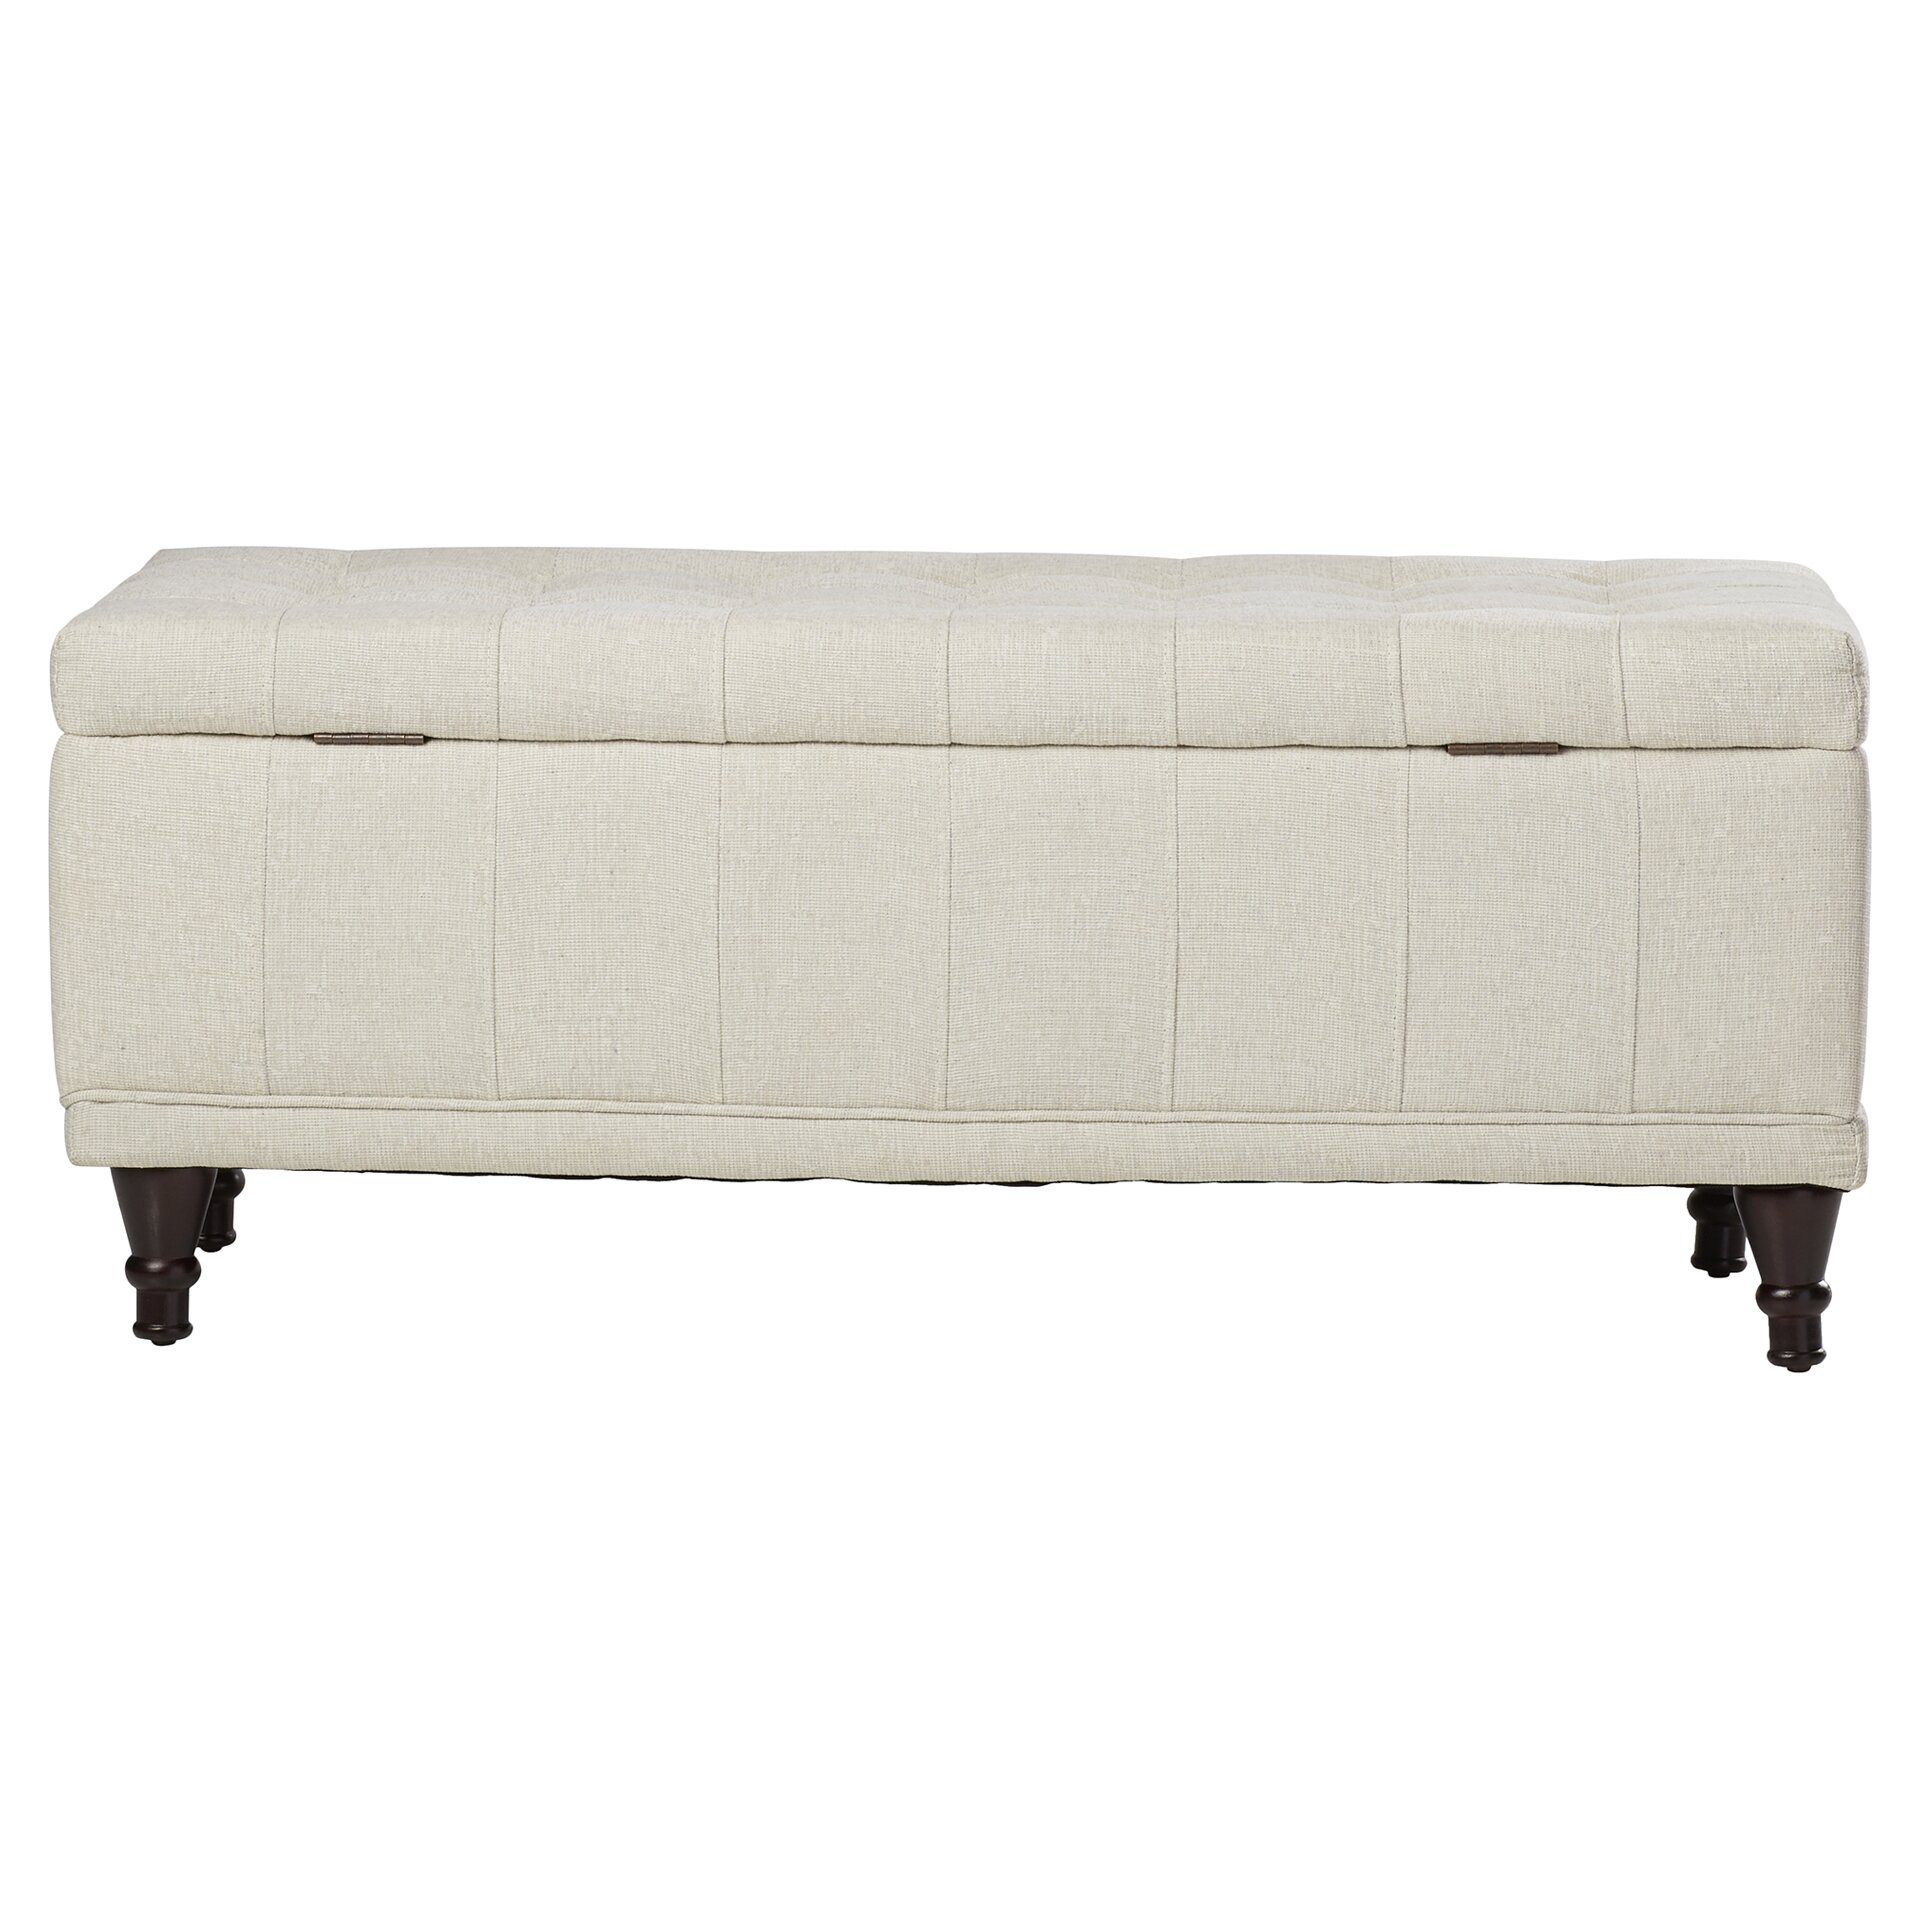 attles fabric bedroom storage ottoman by darby home co